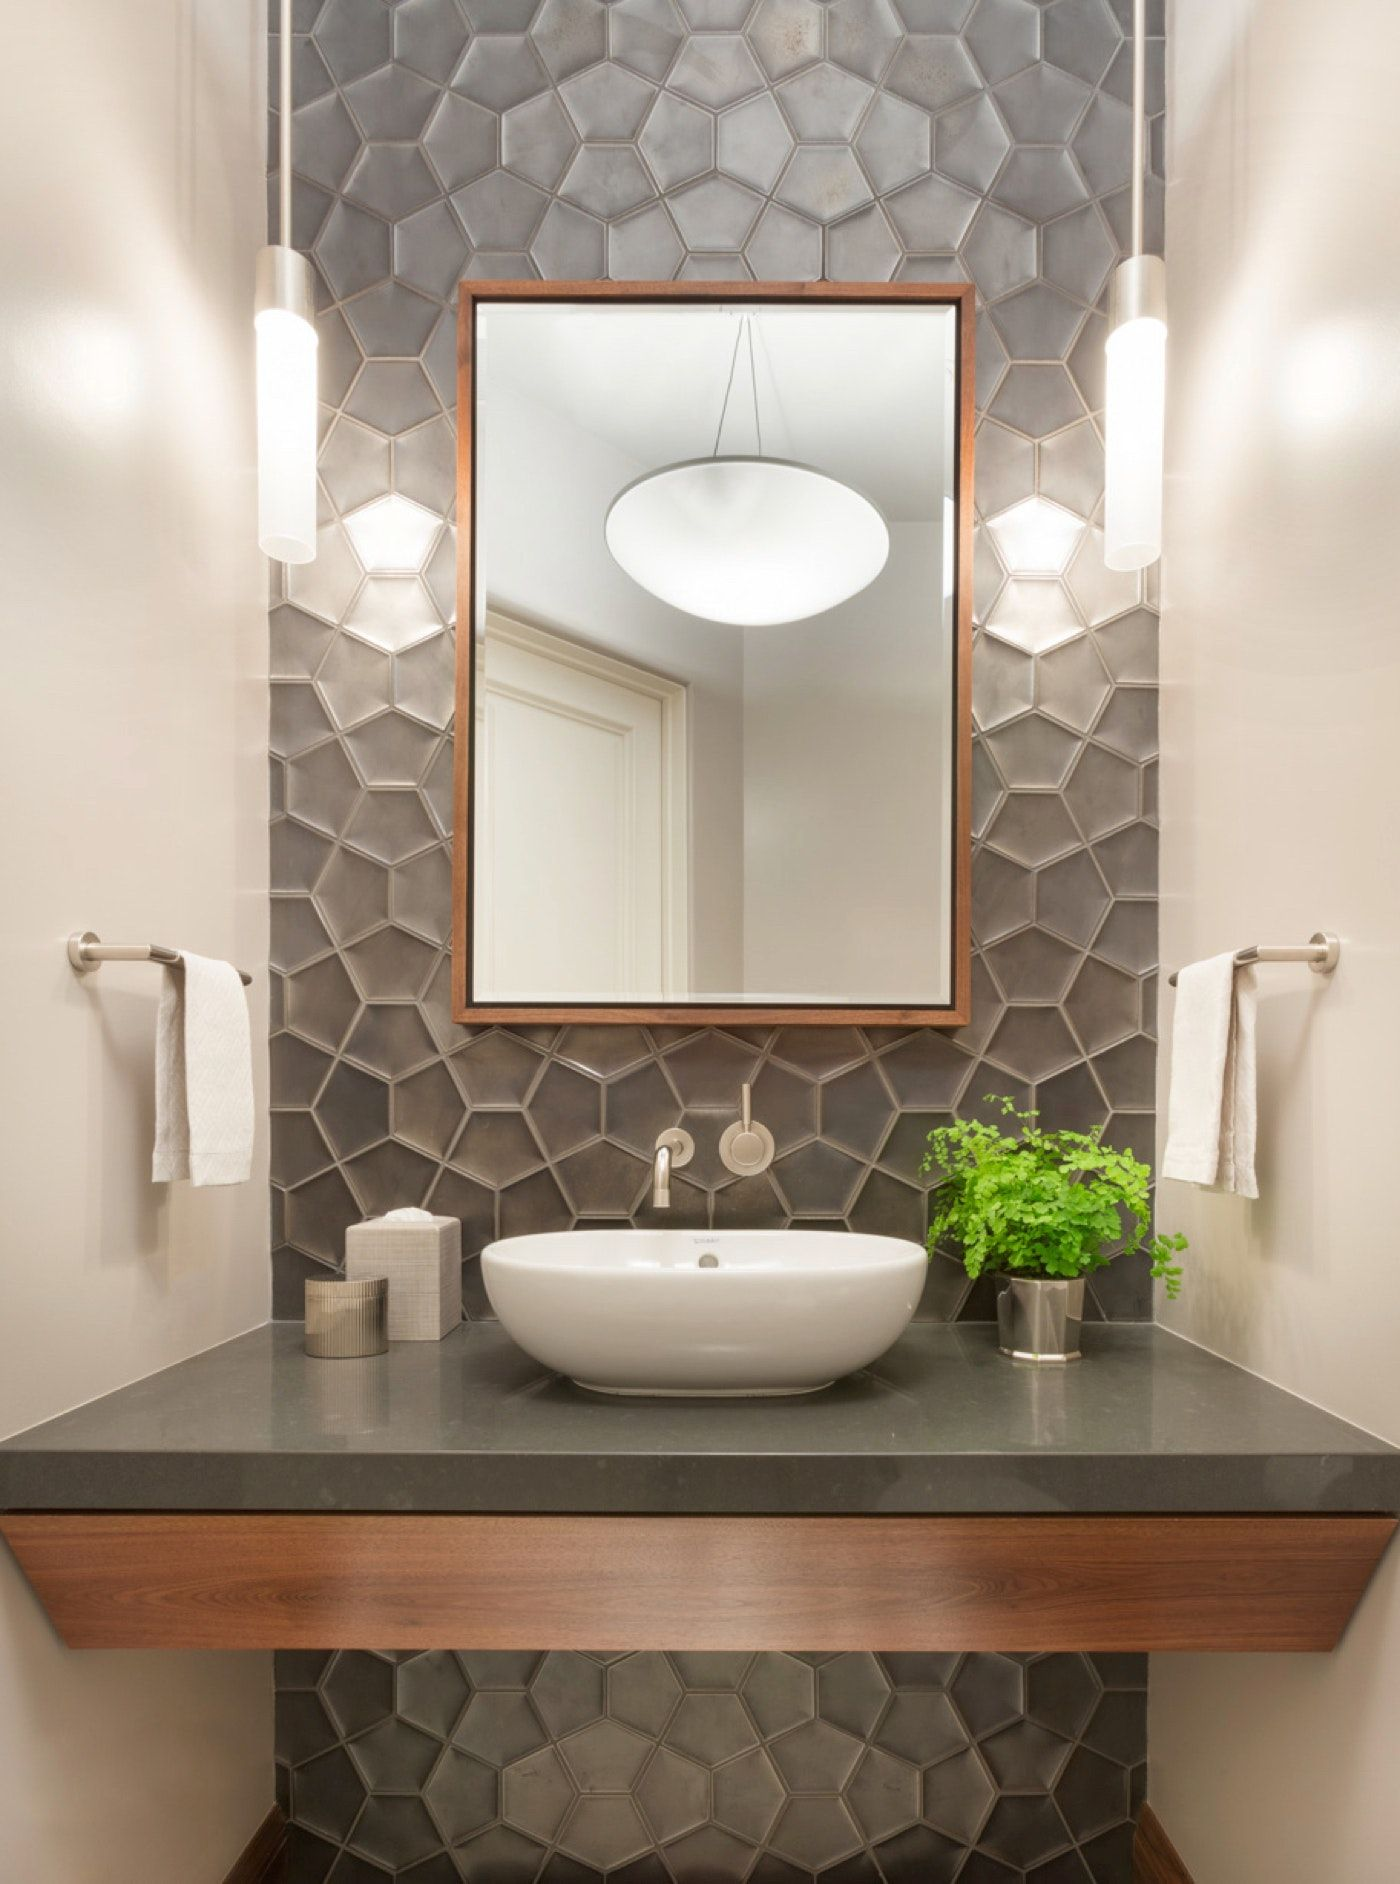 Tiny Powder Room Designs: Los Altos Hills Residence - Powder Room